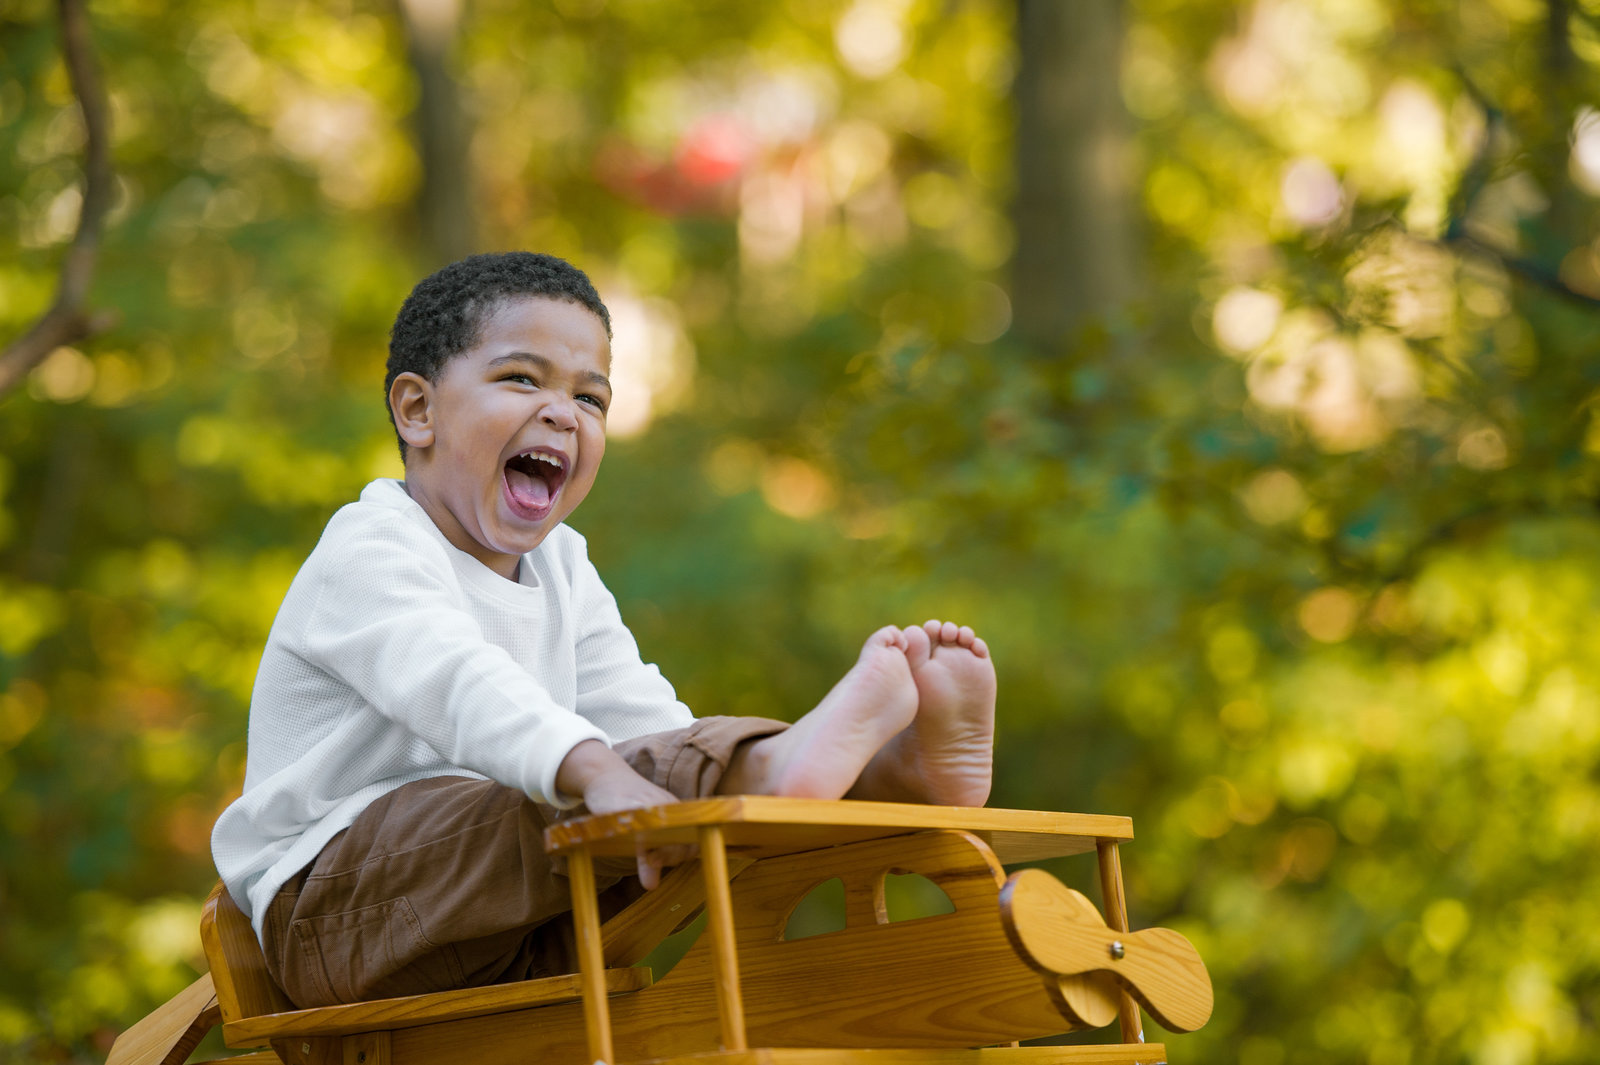 laughing boy sitting on wood airplane rocker